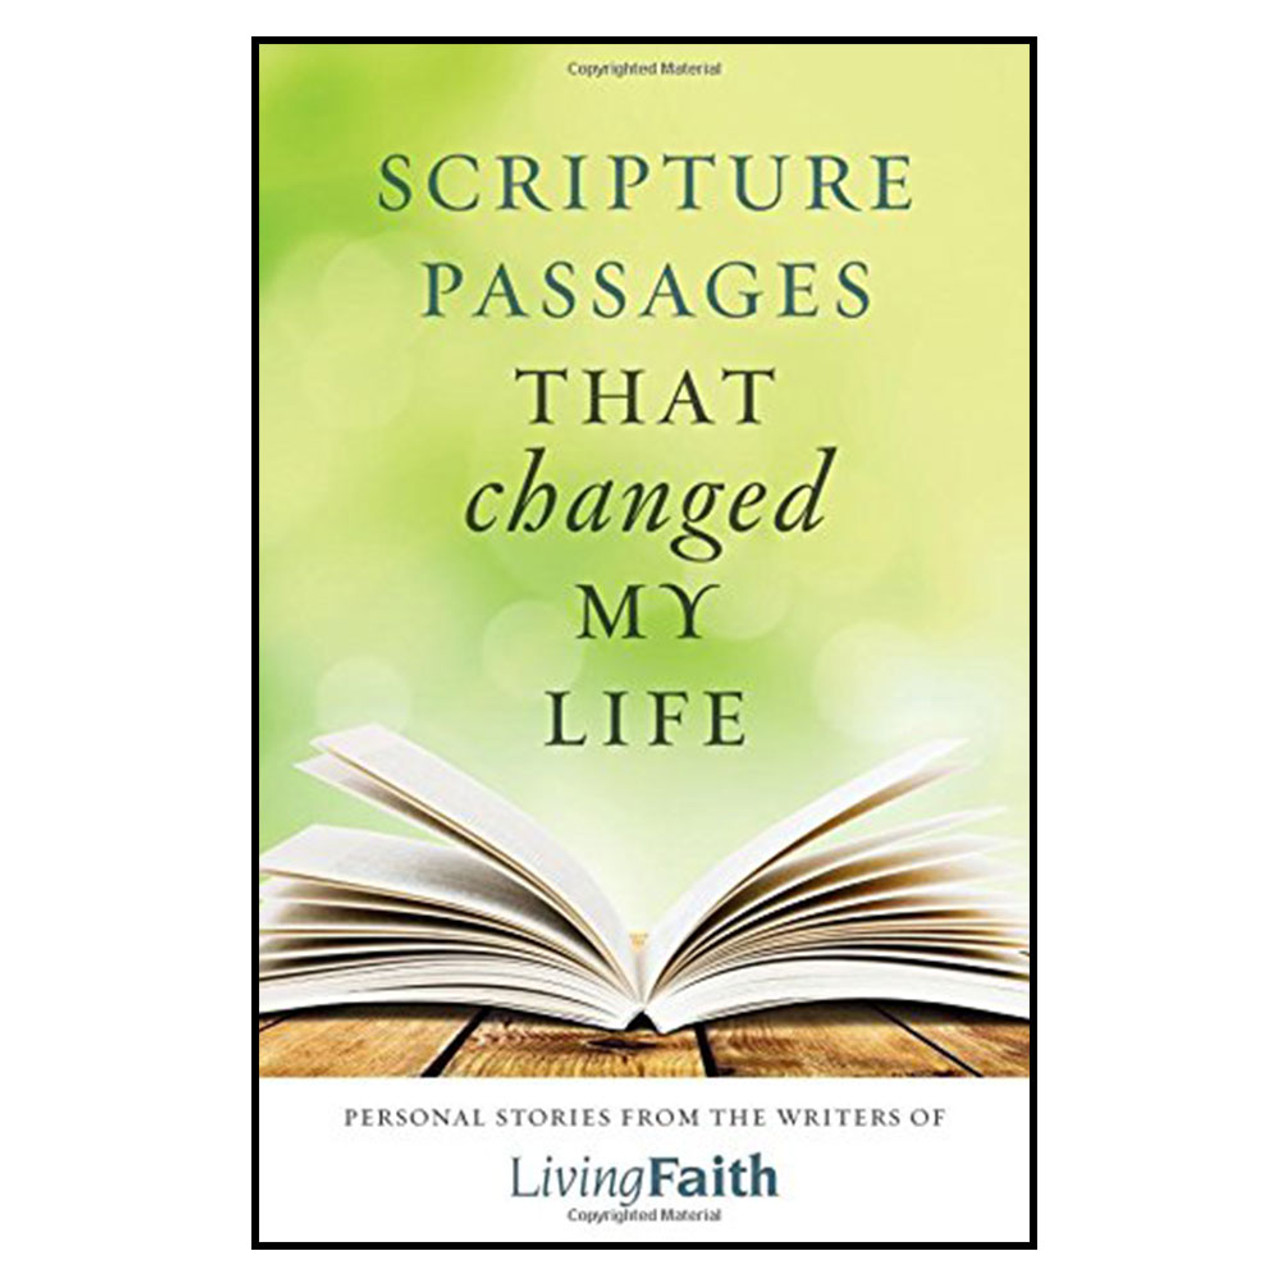 Scripture Passages That Changed My Life